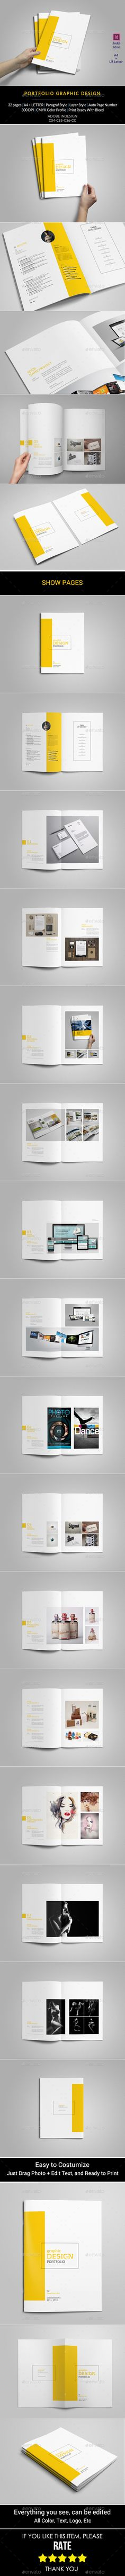 Portfolio Template — InDesign INDD #illustration #interior • Available here → https://graphicriver.net/item/portfolio-template/11443401?ref=pxcr